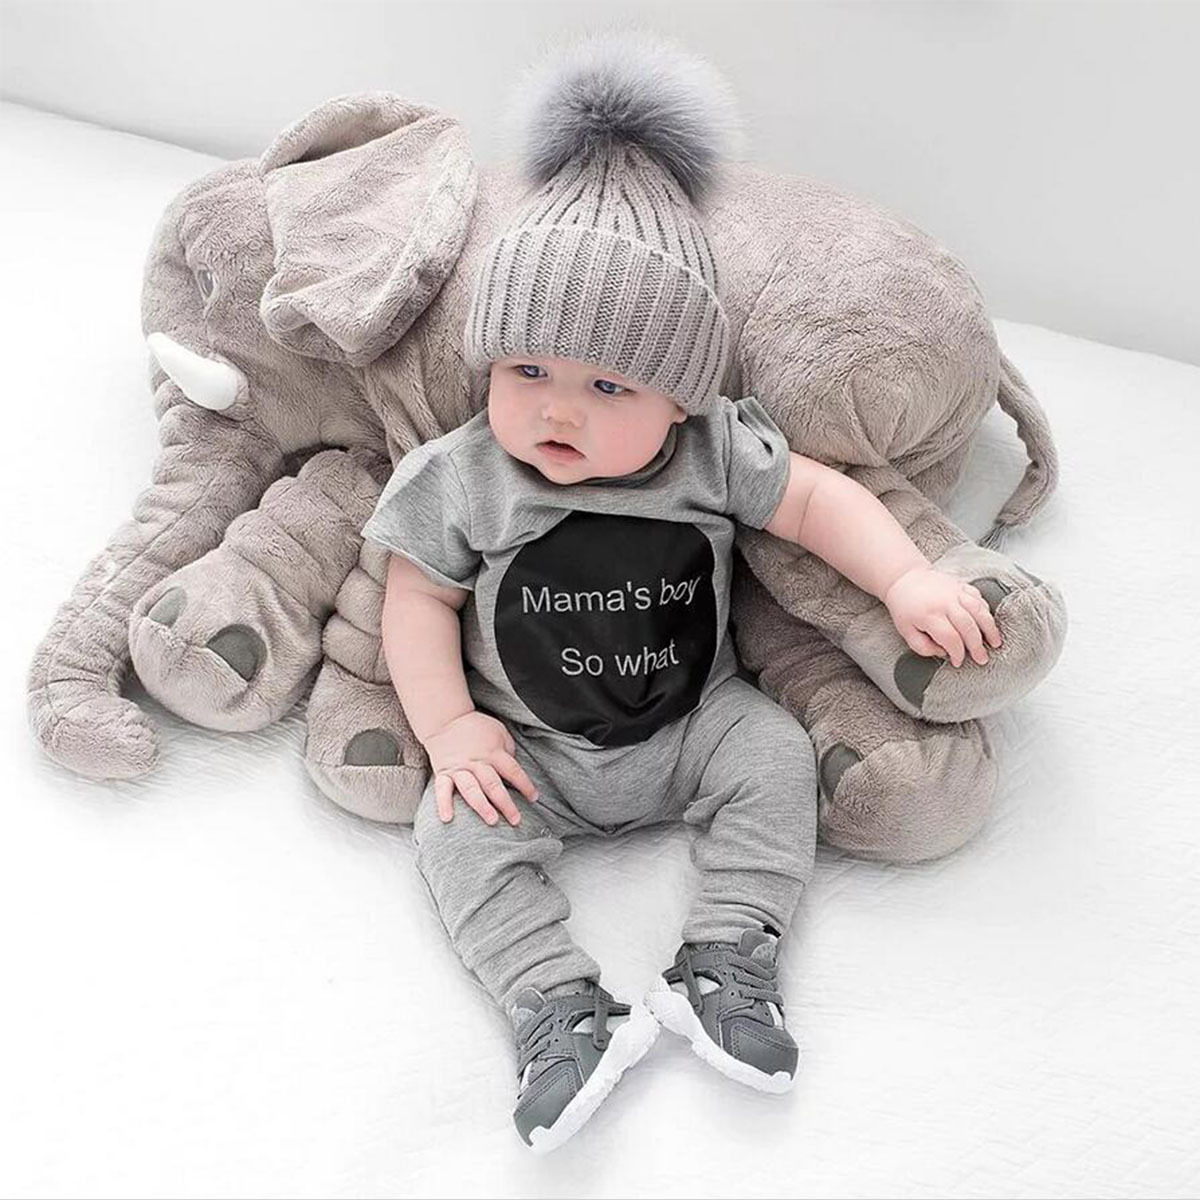 Summer 2018 mamas boy Import Baby Clothes cute Baby Black Clothes newborn - 24M twins short sleeve Baby Boy Romper infant